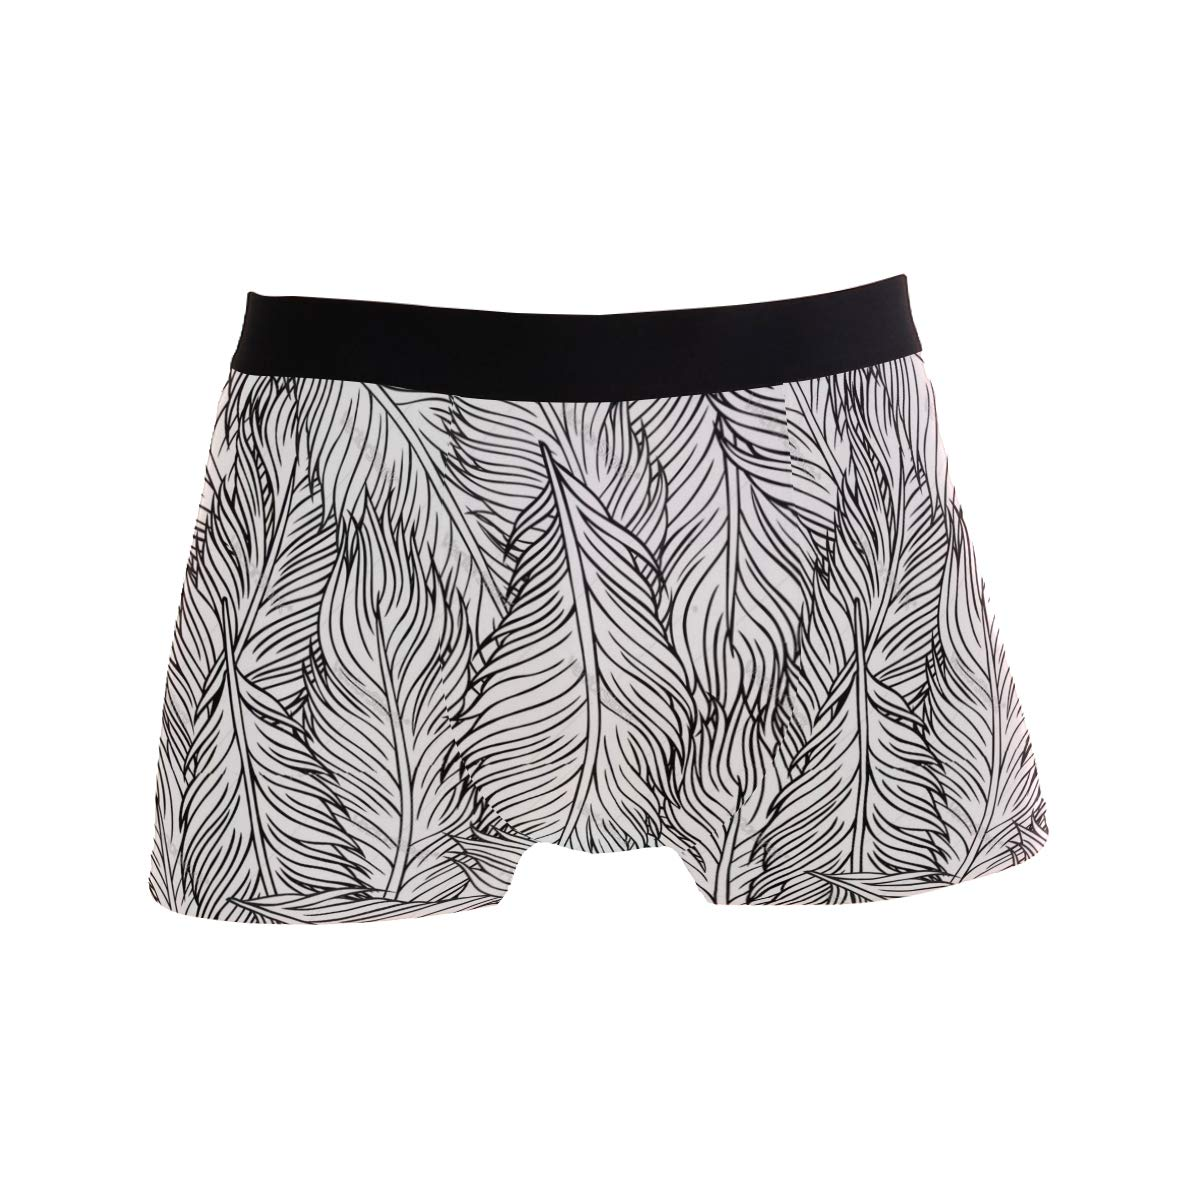 Overwhelmed with Feathers Mens Underwear Mens Bag Soft Cotton Underwear 2 Pack